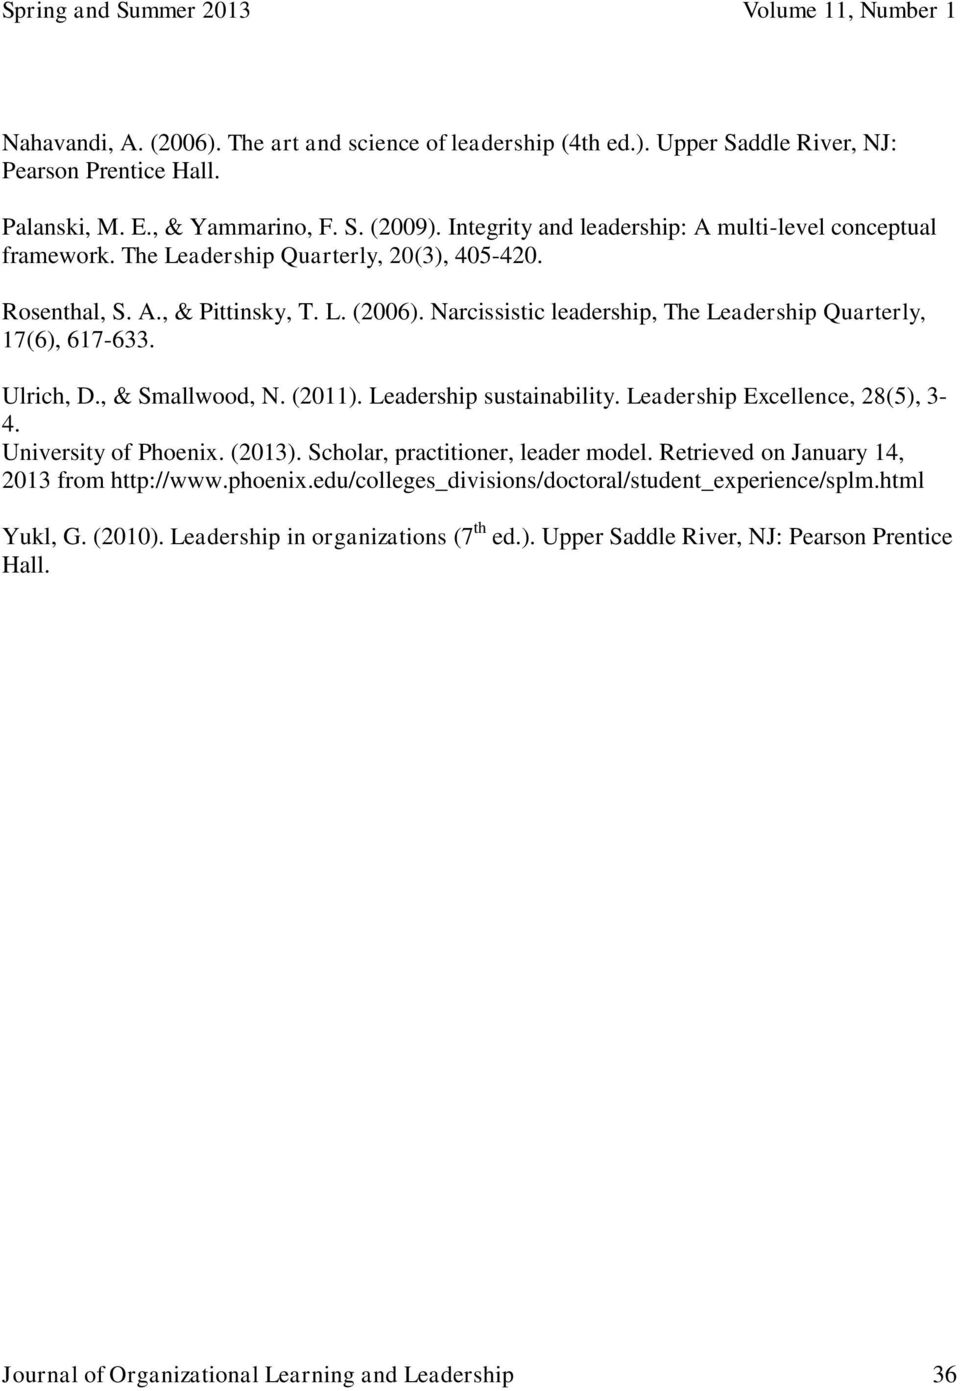 Narcissistic leadership, The Leadership Quarterly, 17(6), 617-633. Ulrich, D., & Smallwood, N. (2011). Leadership sustainability. Leadership Excellence, 28(5), 3-4. University of Phoenix. (2013).